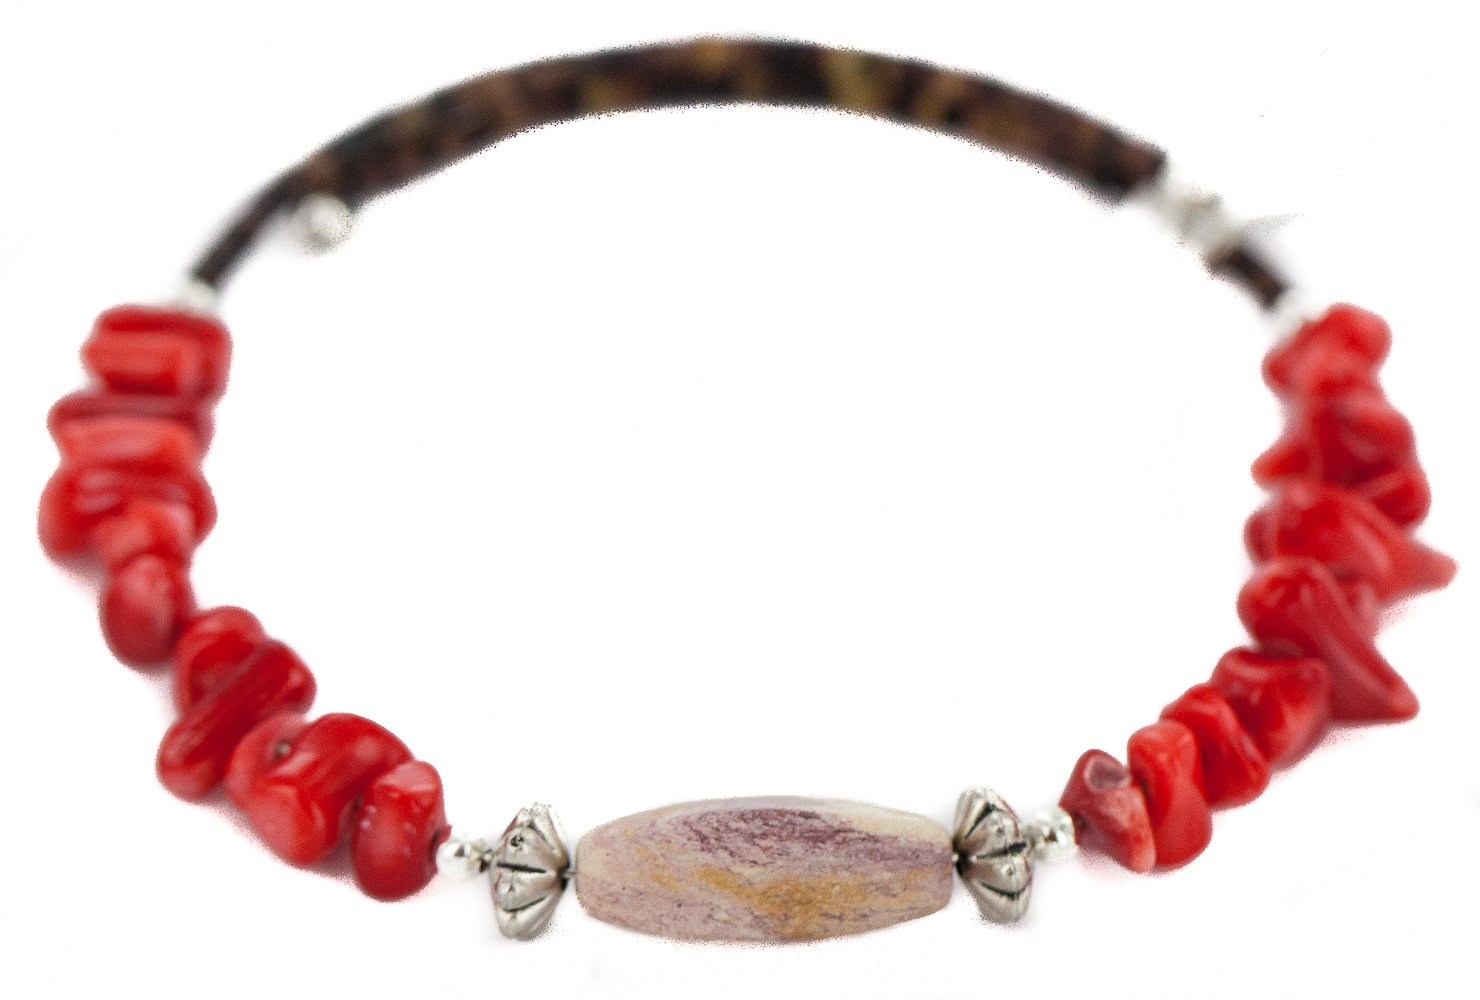 80 Retail Tag Navajo Made by Delores Little Authentic Jasper Heishi Coral Native American Wrap Bracelet by